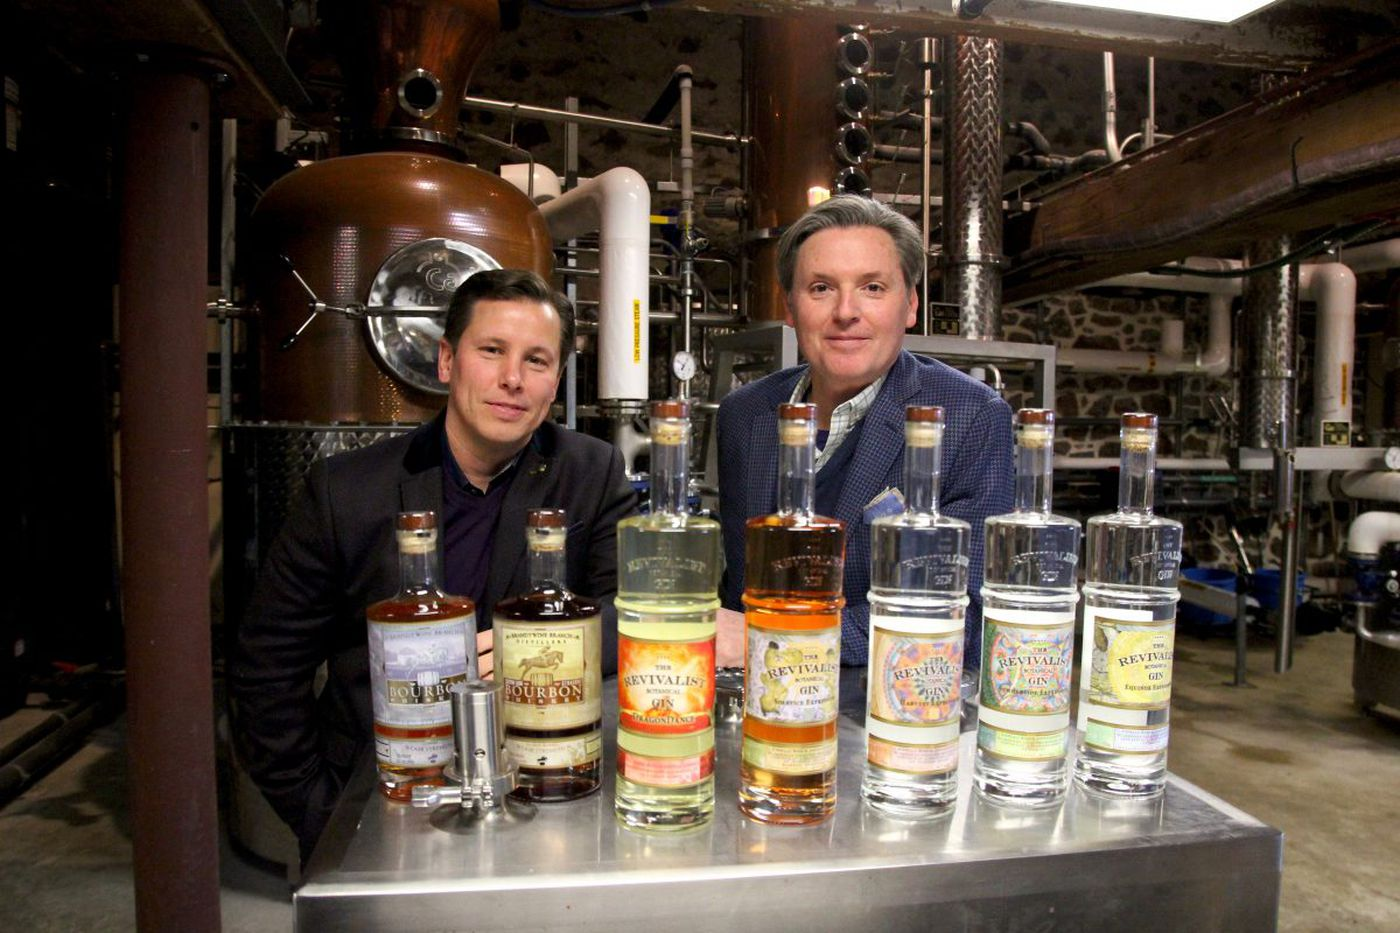 The spirits moved them from the auto-parts world into gin and bourbon